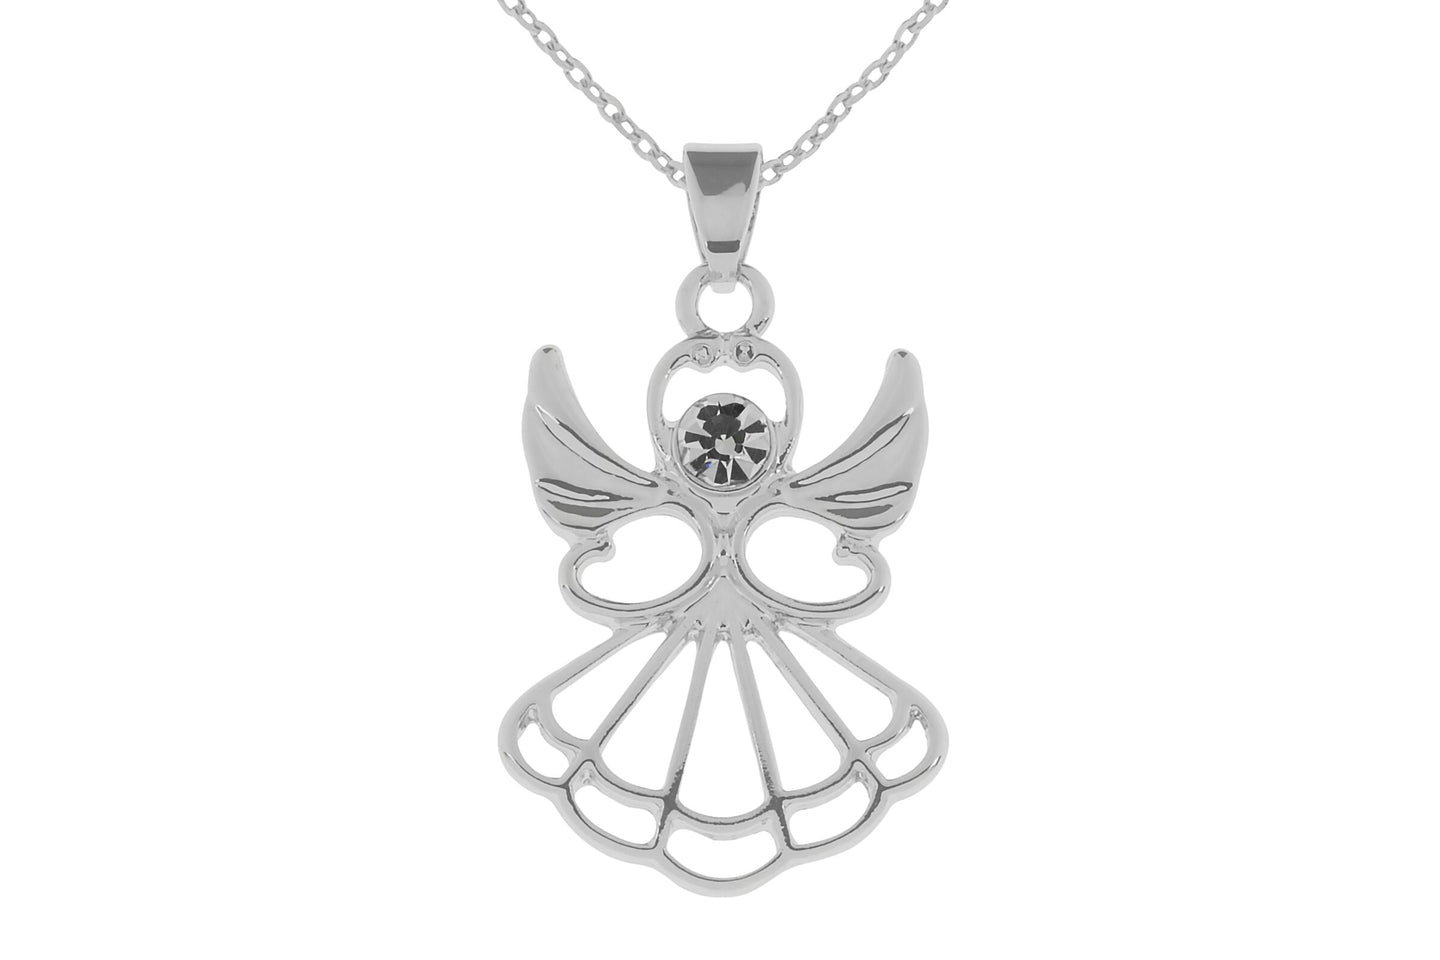 Silver Angel Necklace - Quirky Giftz Ltd